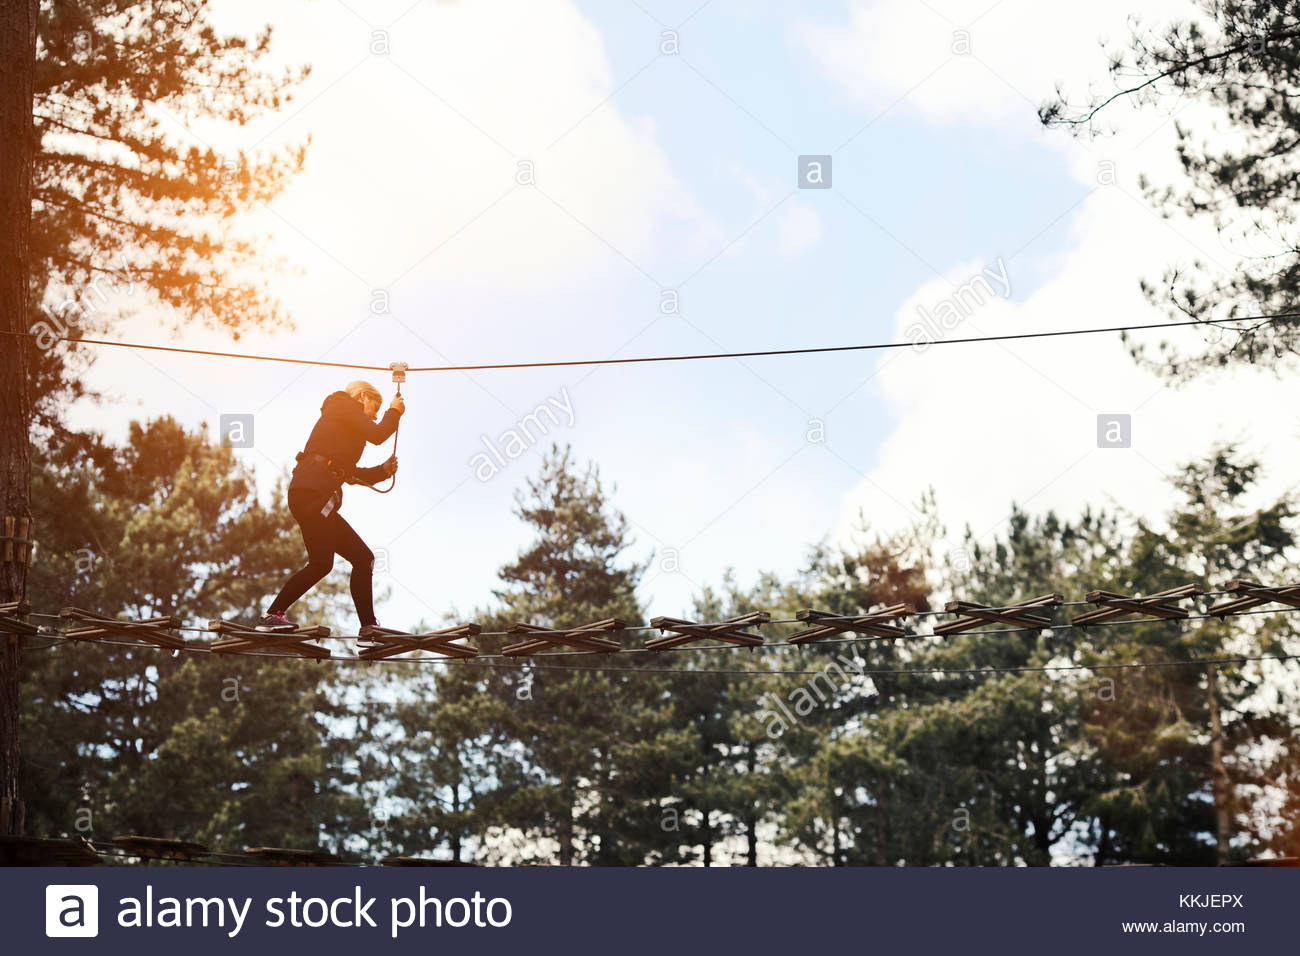 Wire Ropes Stock Photos & Wire Ropes Stock Images - Alamy